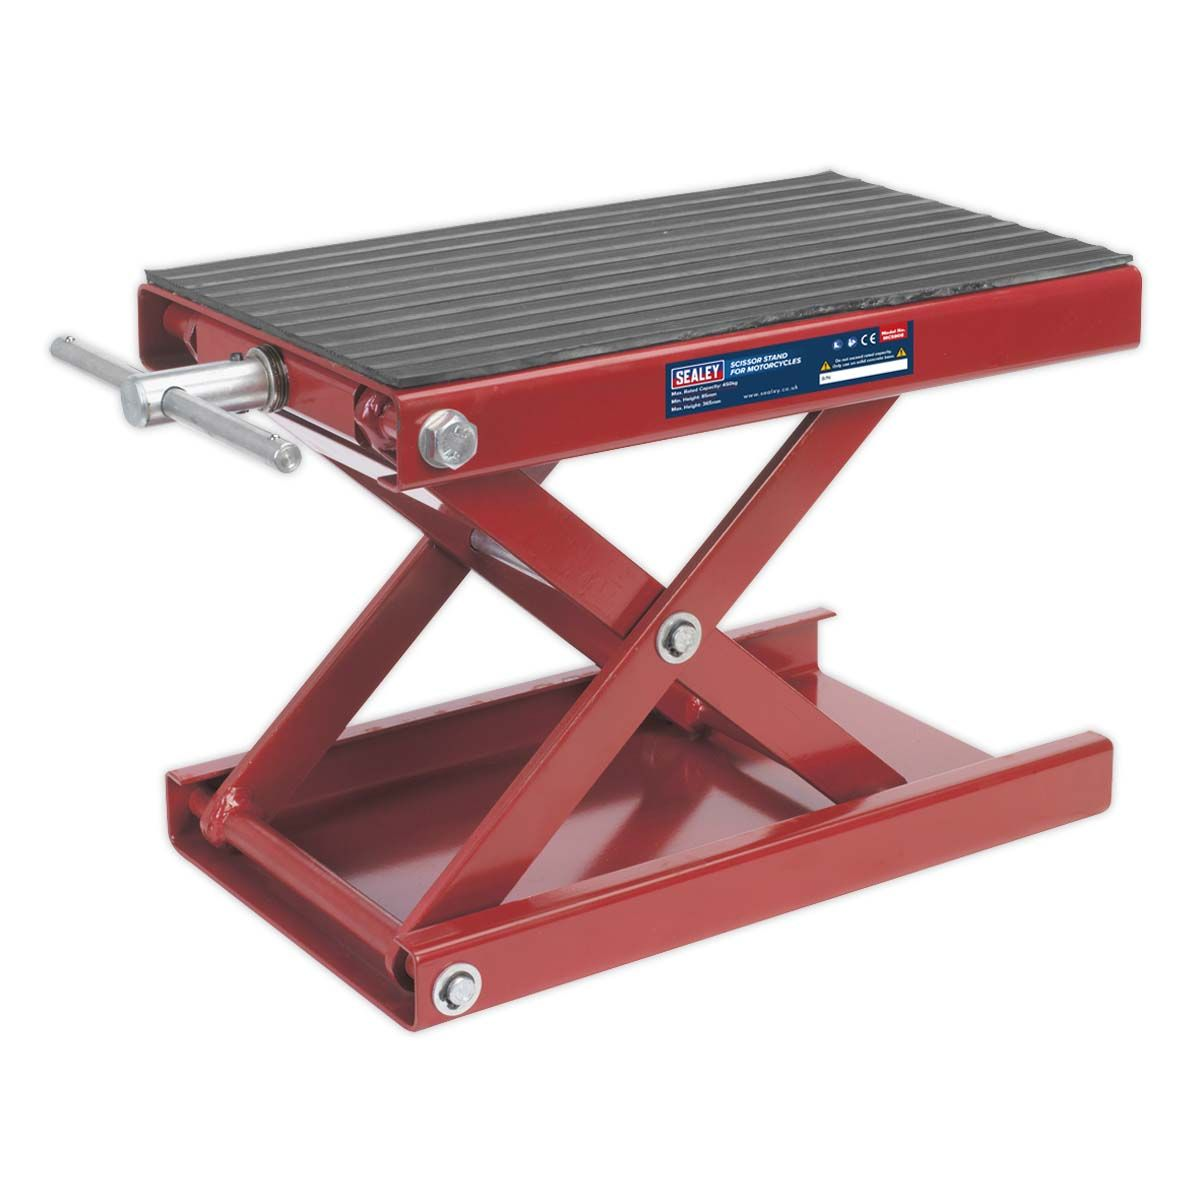 Sealey Scissor Stand for Motorcycles 450kg